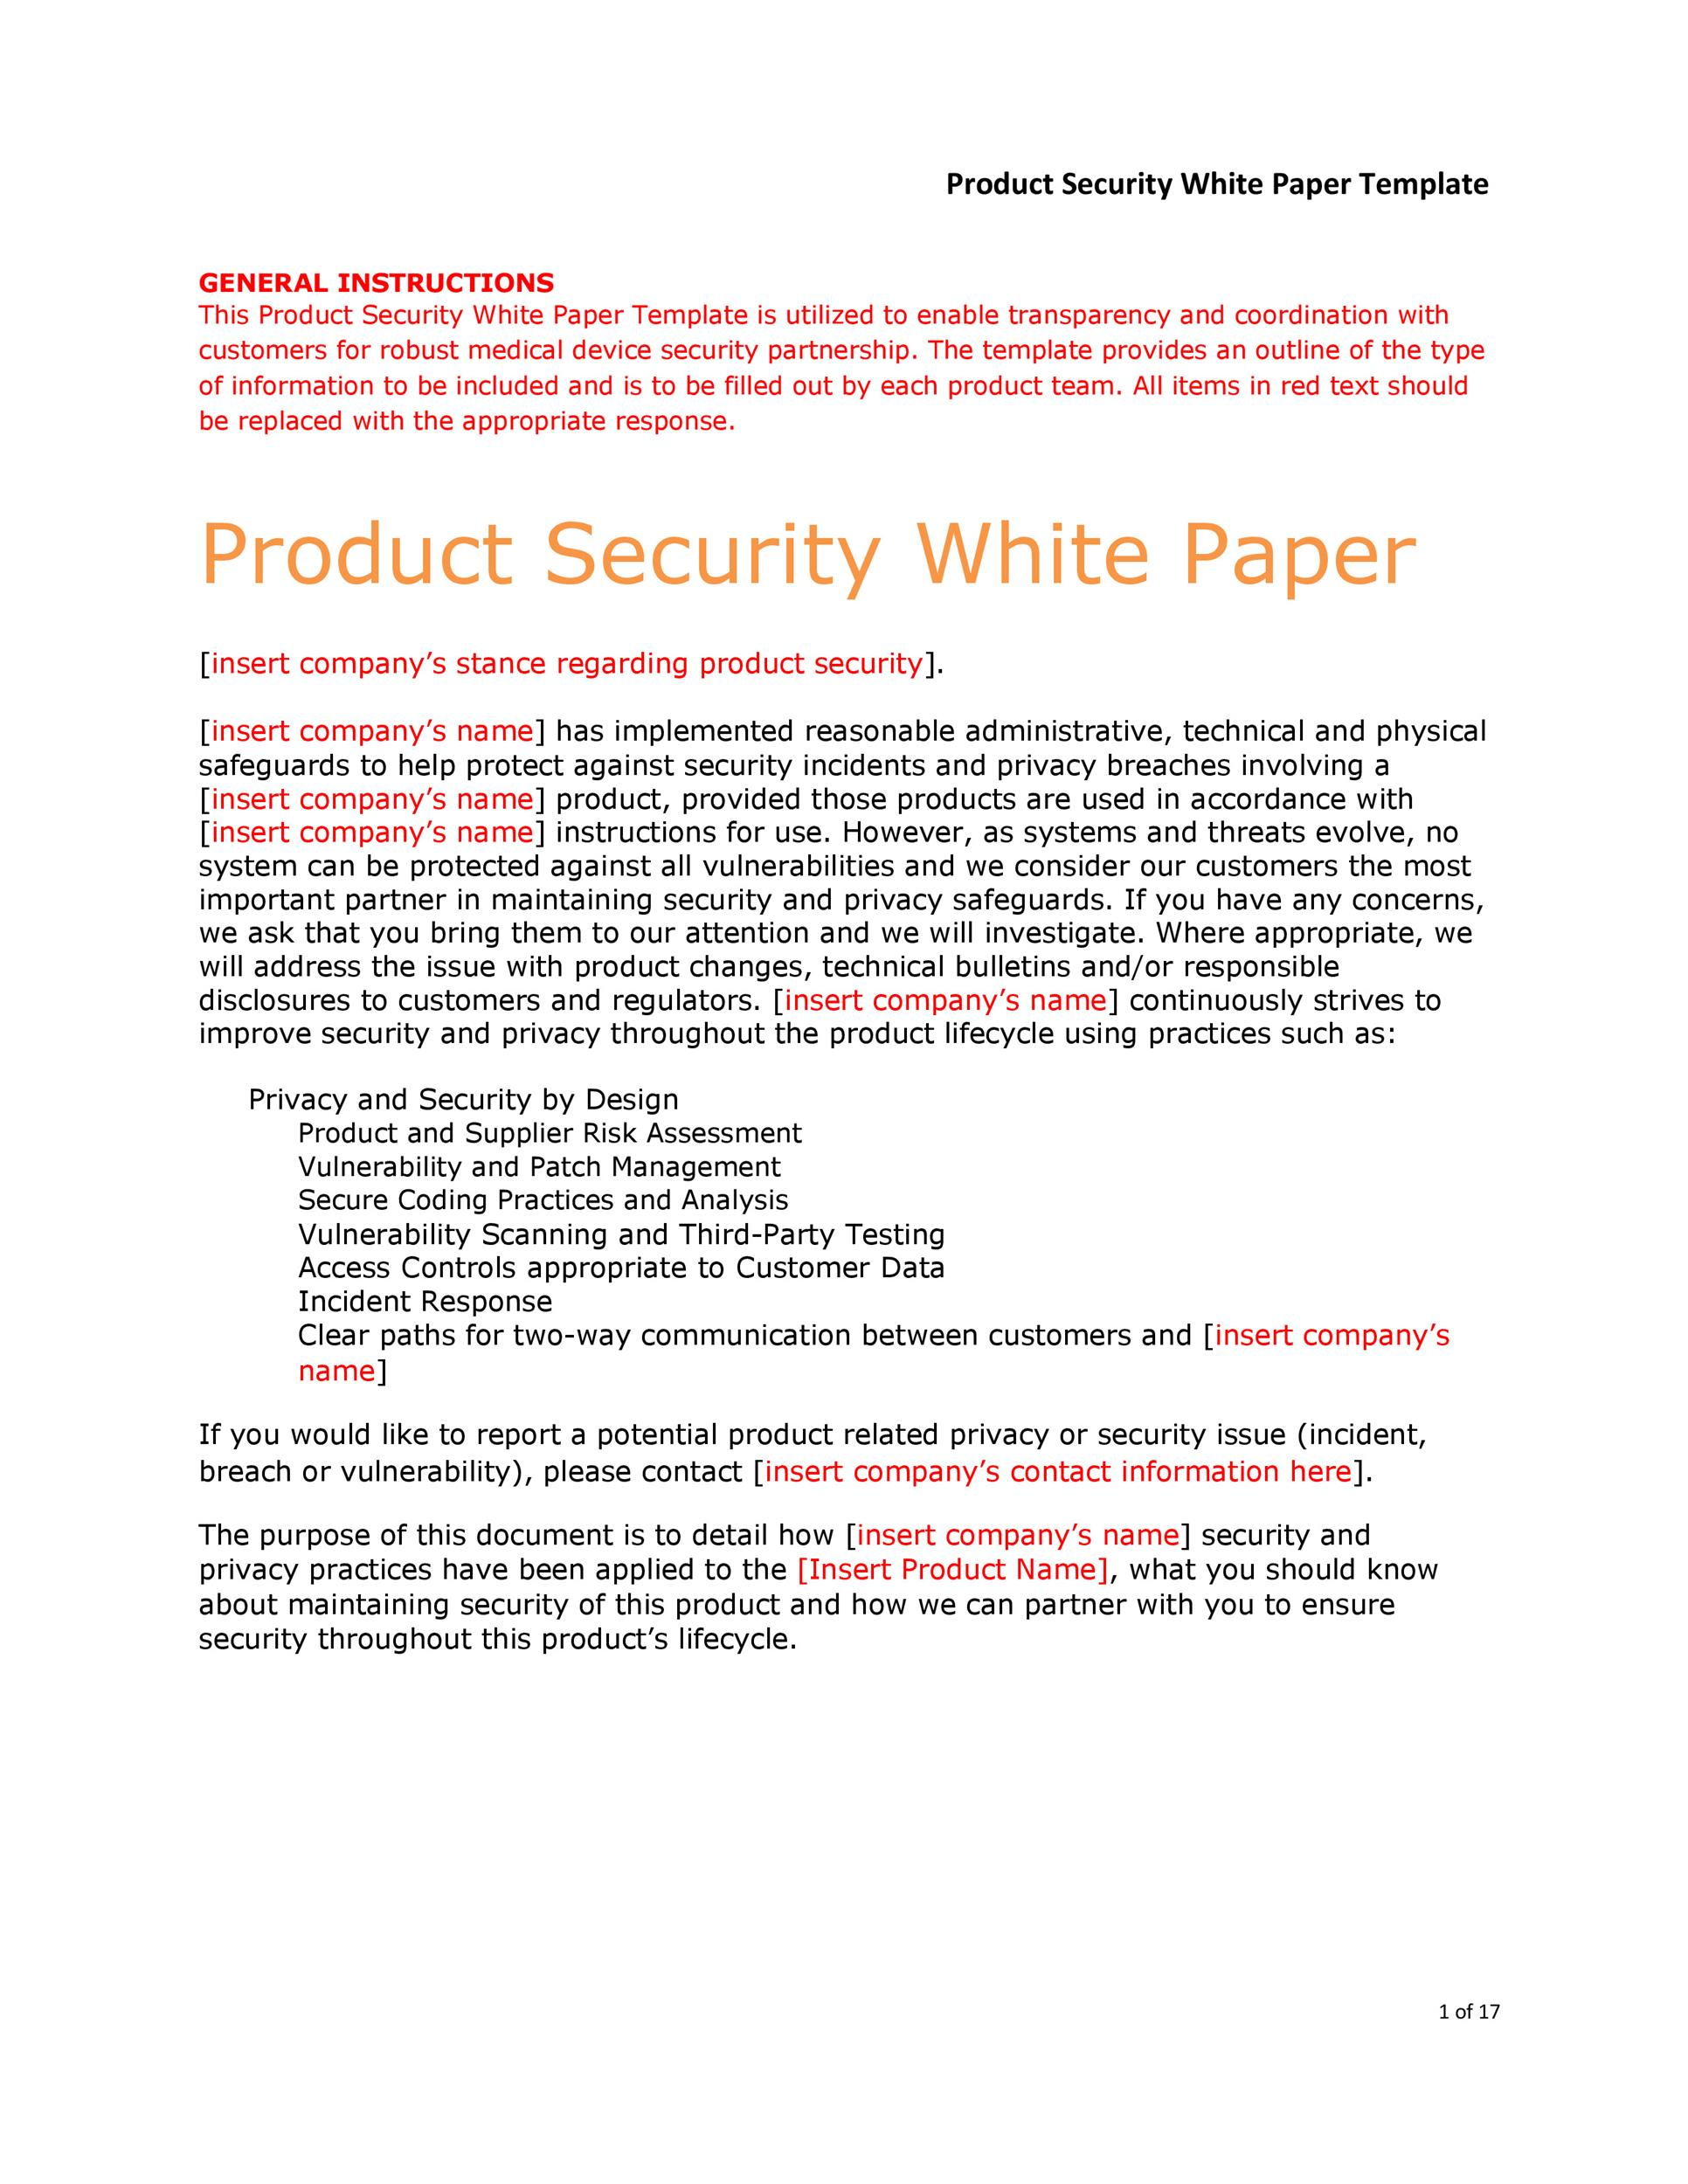 White Paper Word Template from templatelab.com